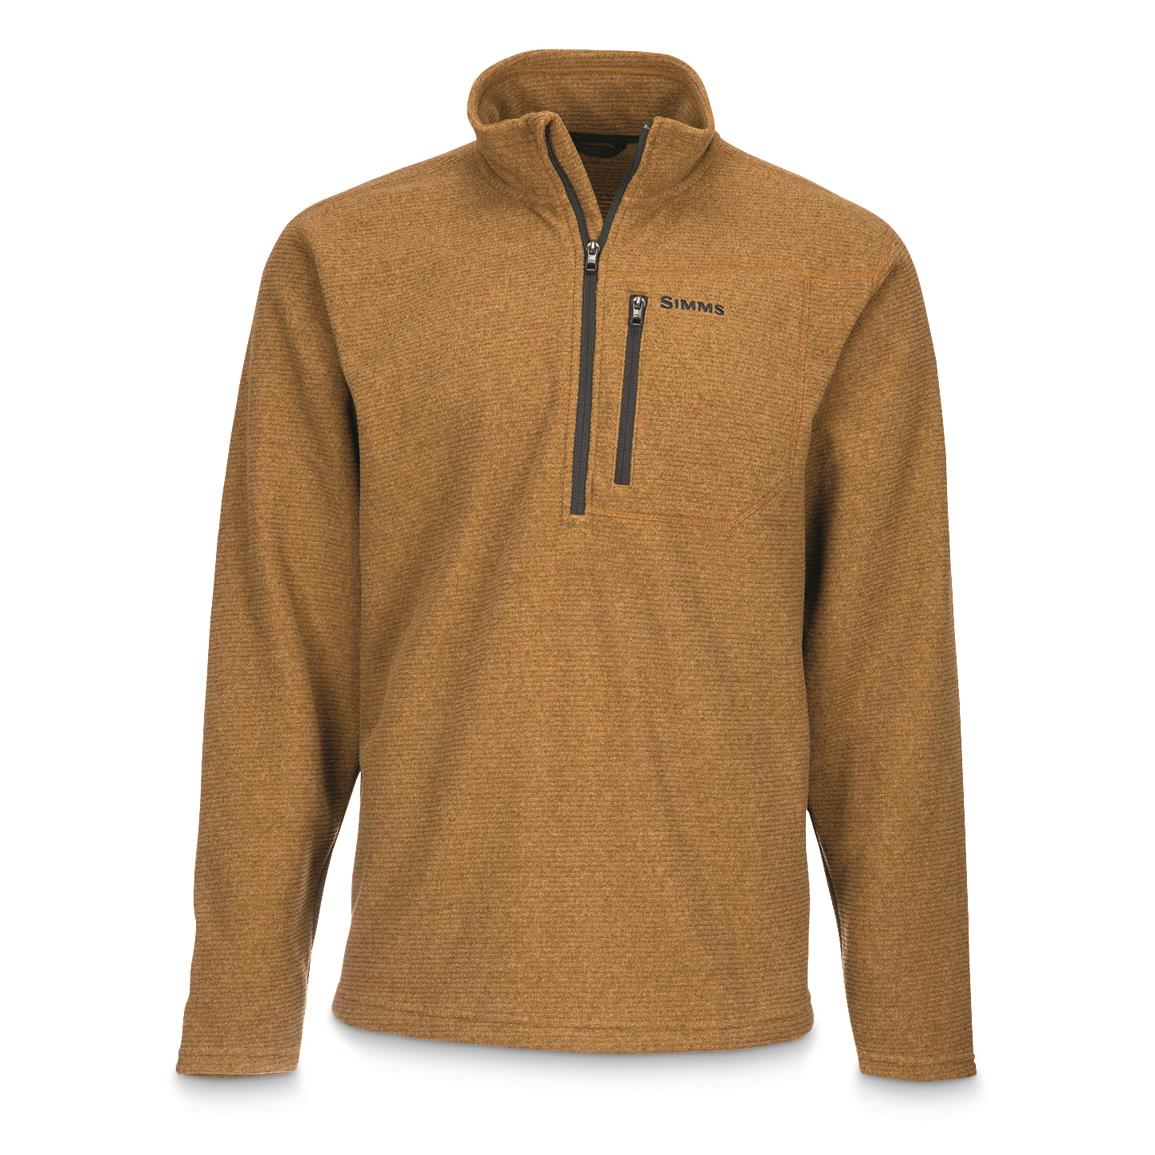 Simms Men's Rivershed Quarter-zip Fleece Sweater, Dark Bronze